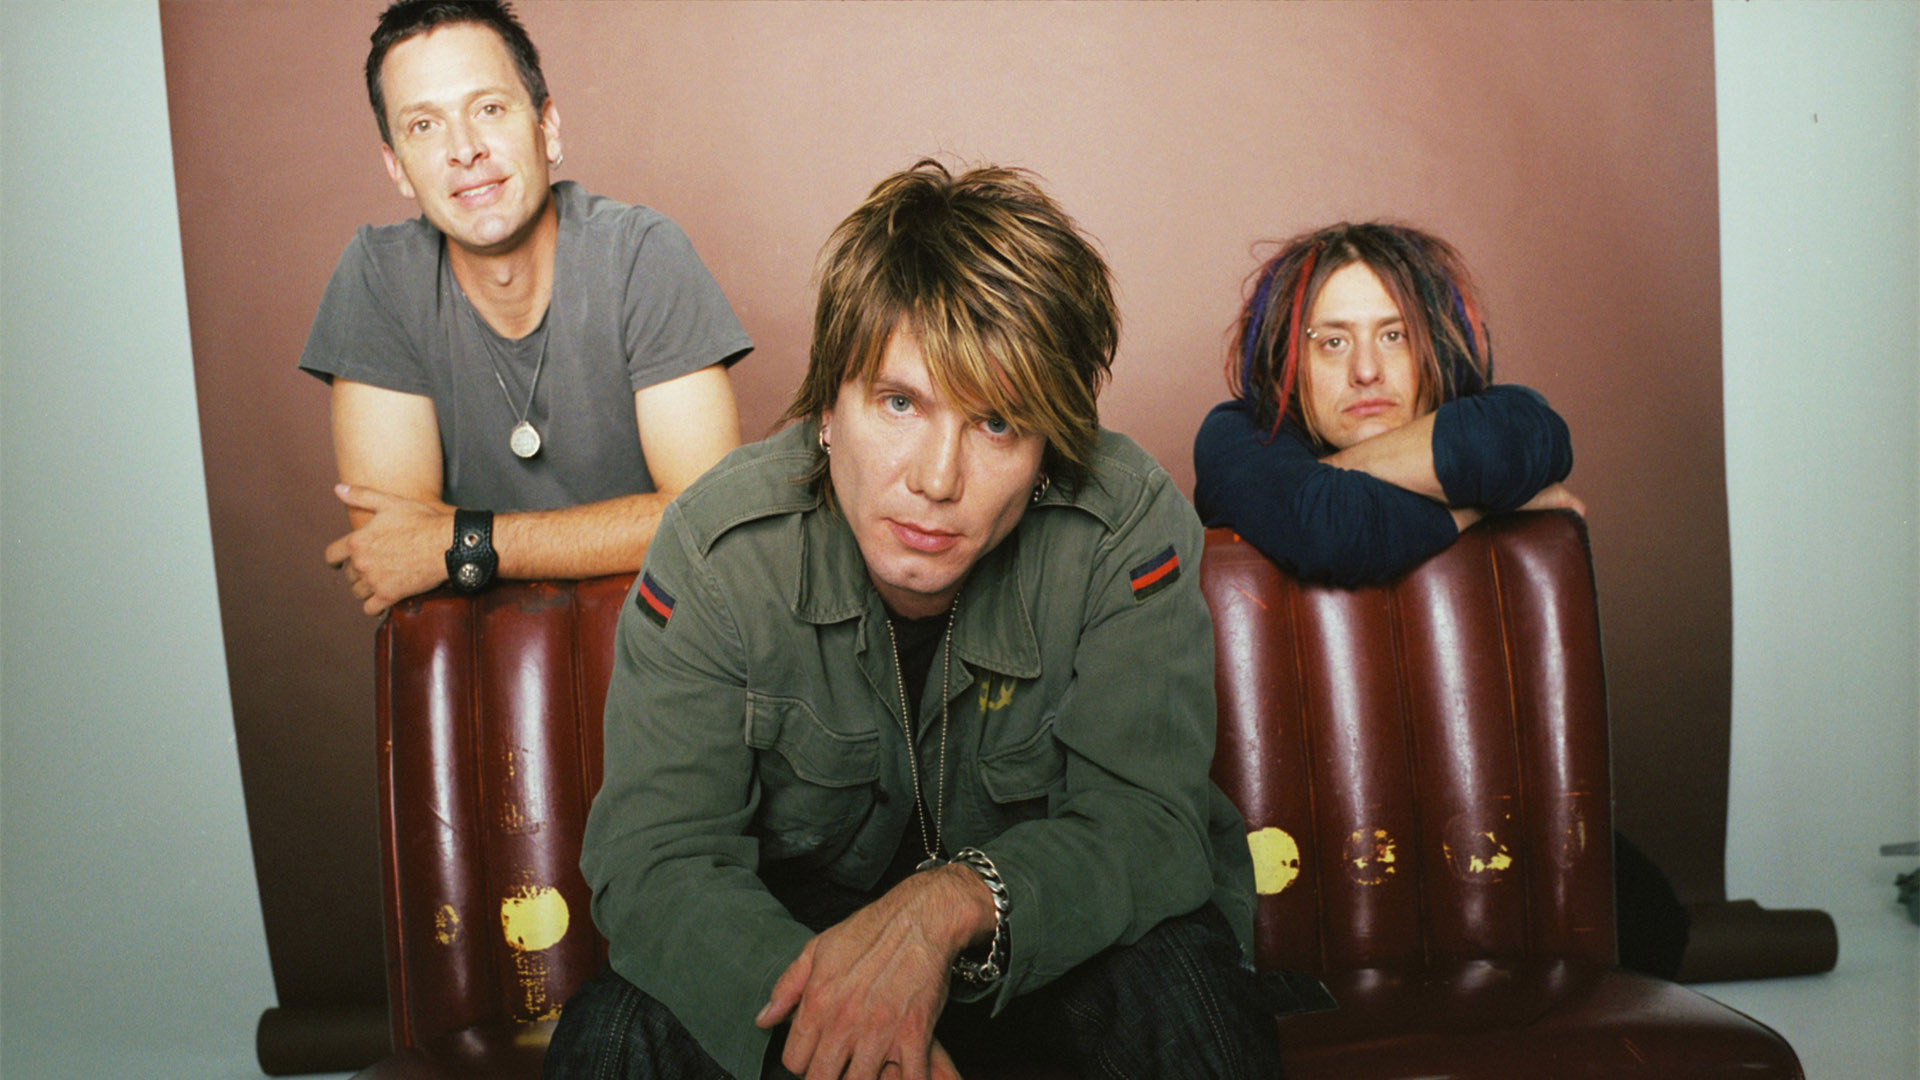 goo goo Goo goo dolls in concert: backed by a catalog of hits and a pile of platinum records, these buffalo alt-rockers continue to repay the fans that built them with epic showmanship and tireless performances.